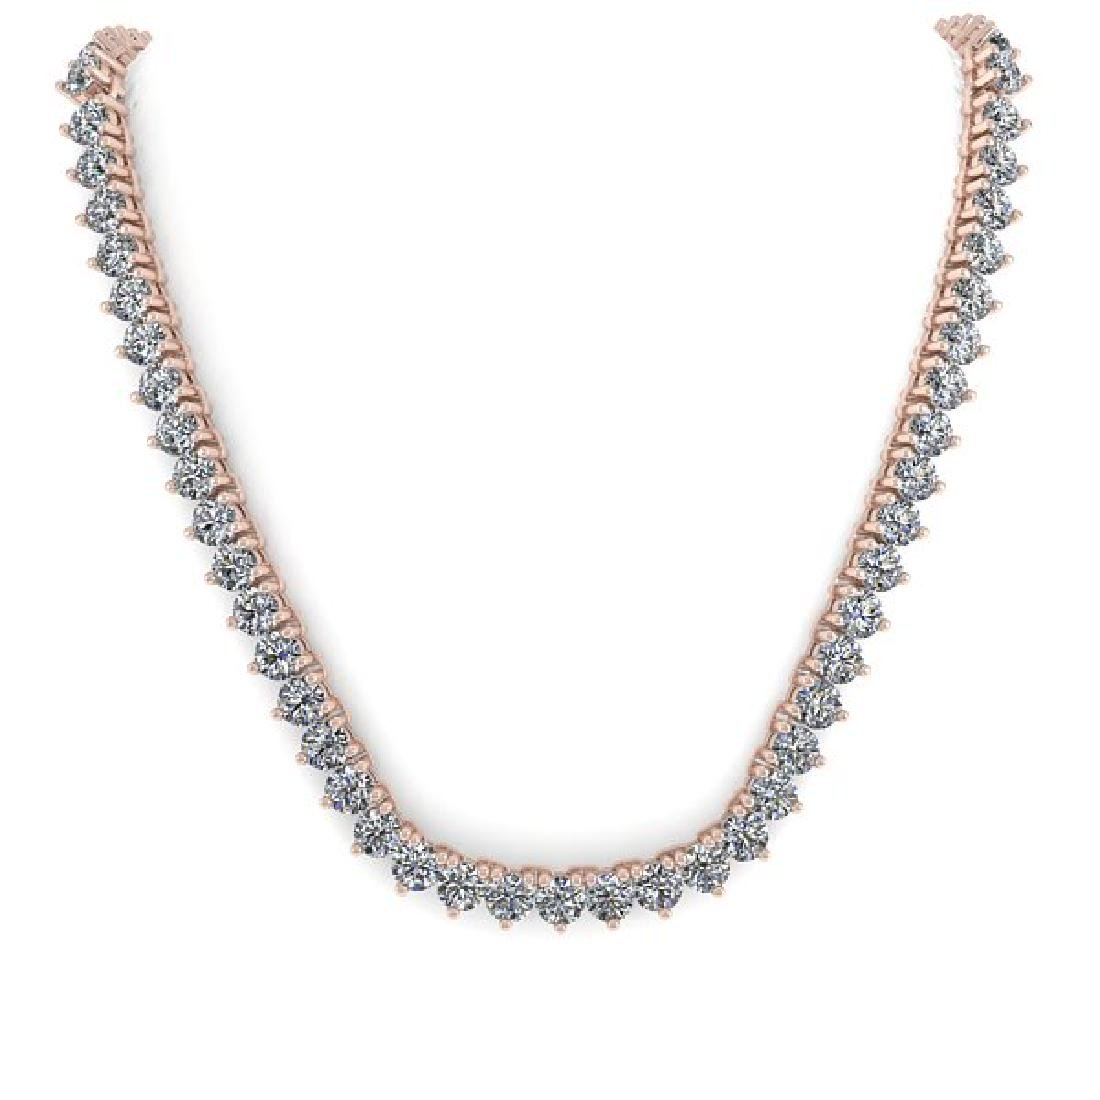 80 CTW Solitaire Certified SI Diamond Necklace 14K Rose - 3